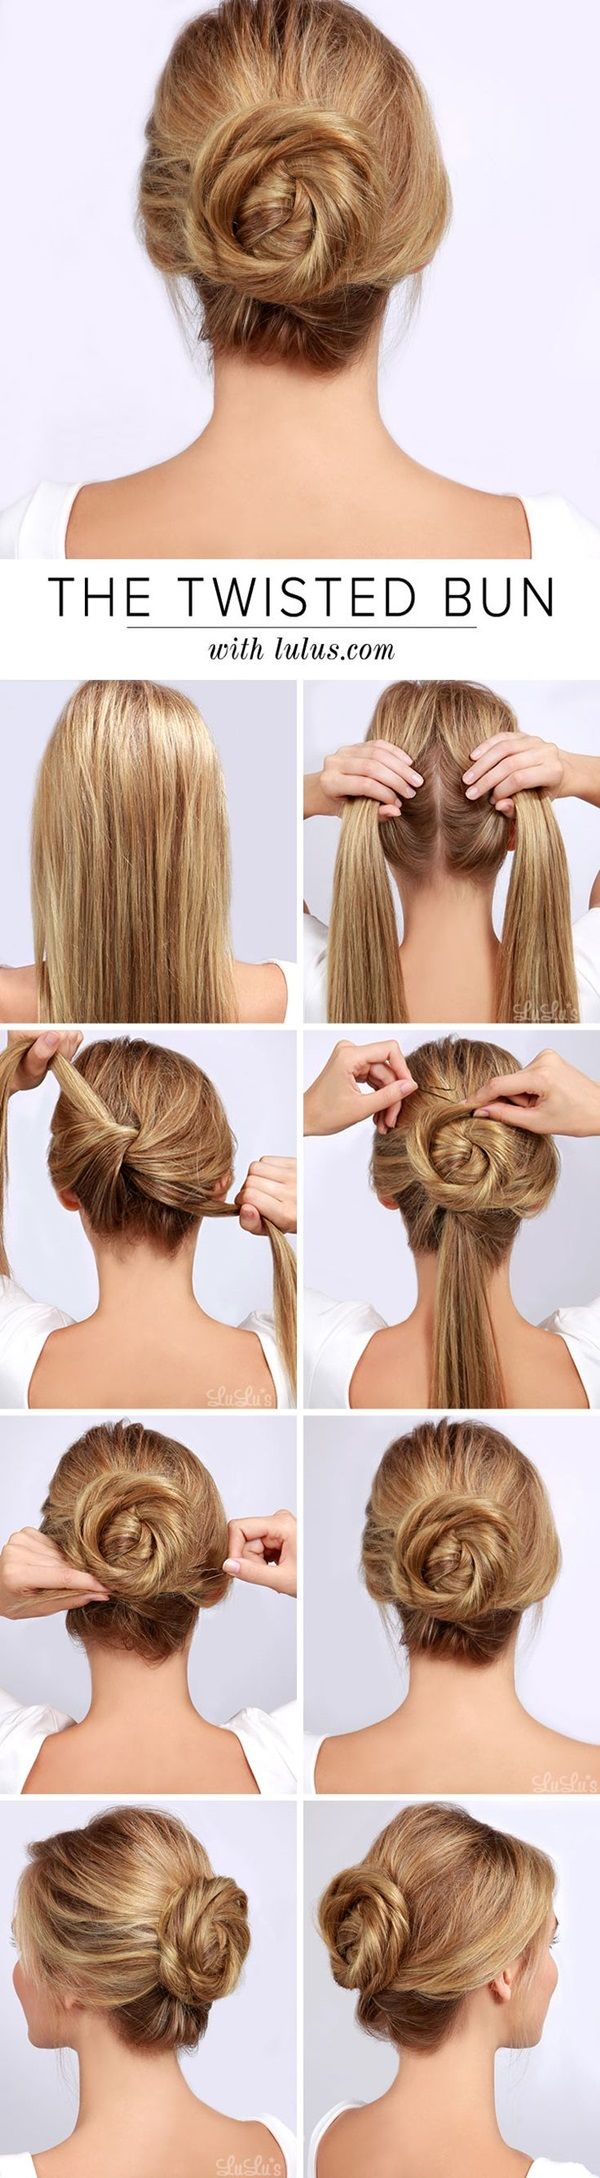 80 simple five minute hairstyles for office women (complete